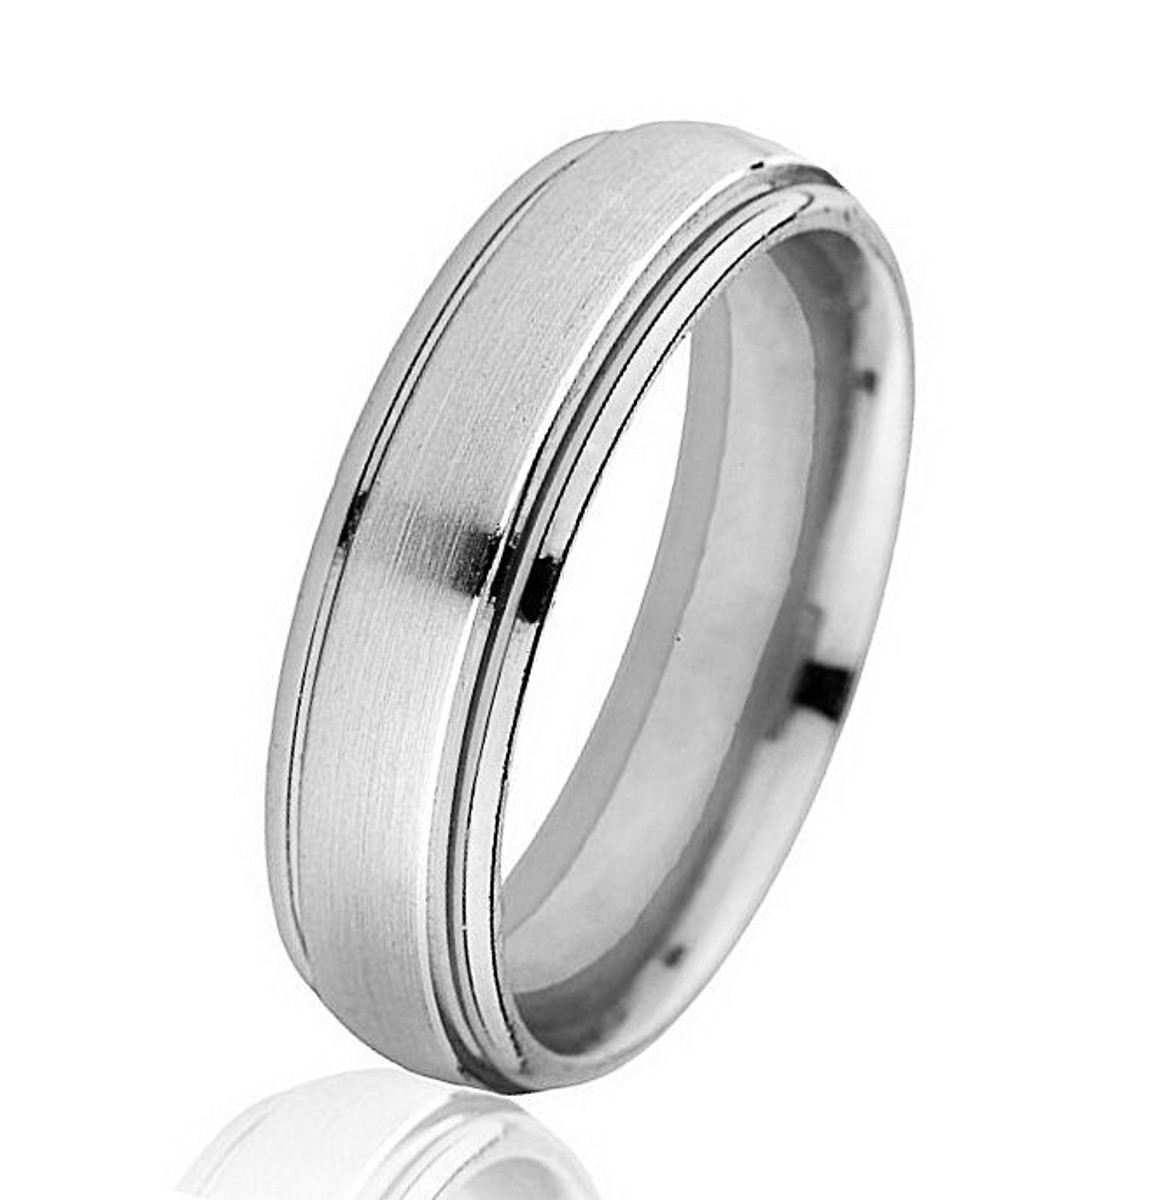 Classic White Gold Comfort Fit Wedding Ring